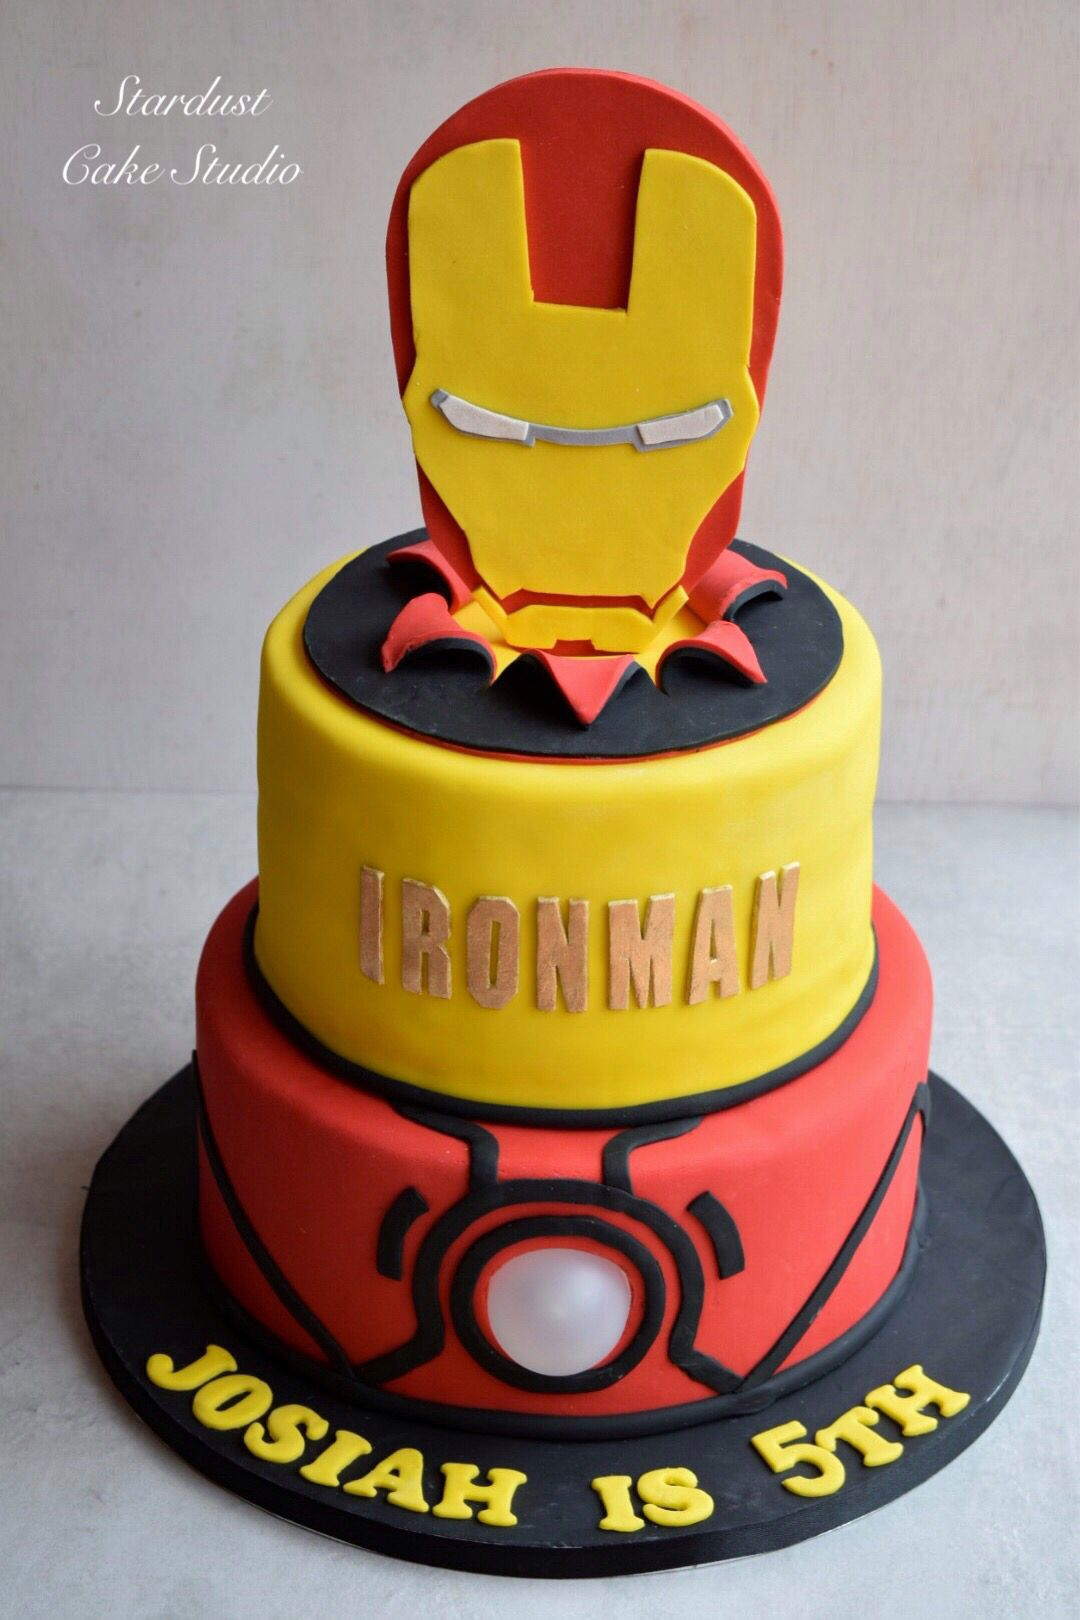 Swell Ironman Cake With Images Iron Man Birthday Ironman Cake Iron Funny Birthday Cards Online Inifodamsfinfo